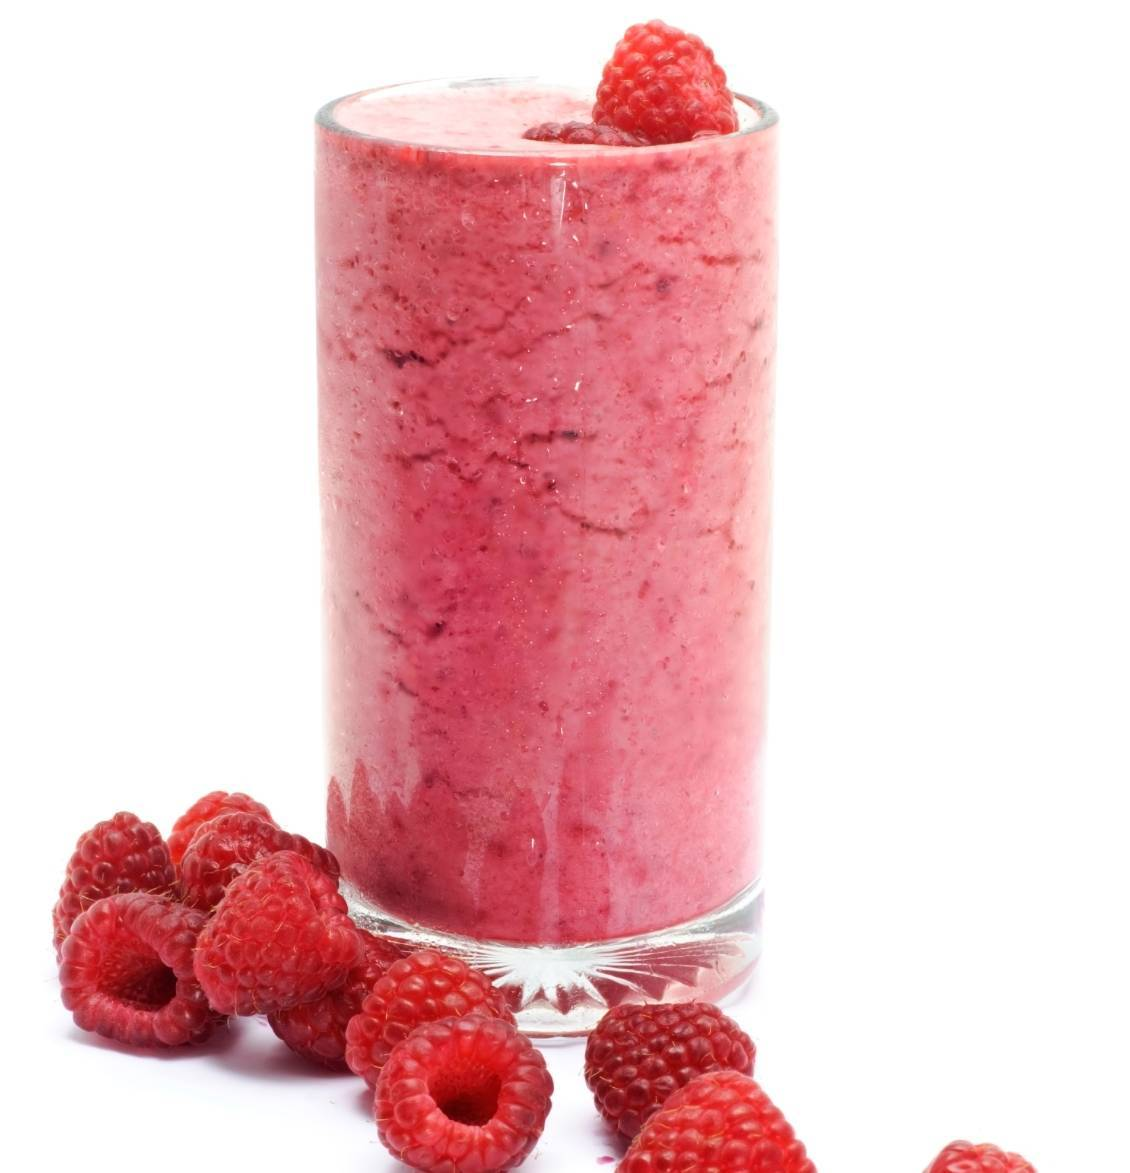 LeanBiotics Raspberry Red Smoothie